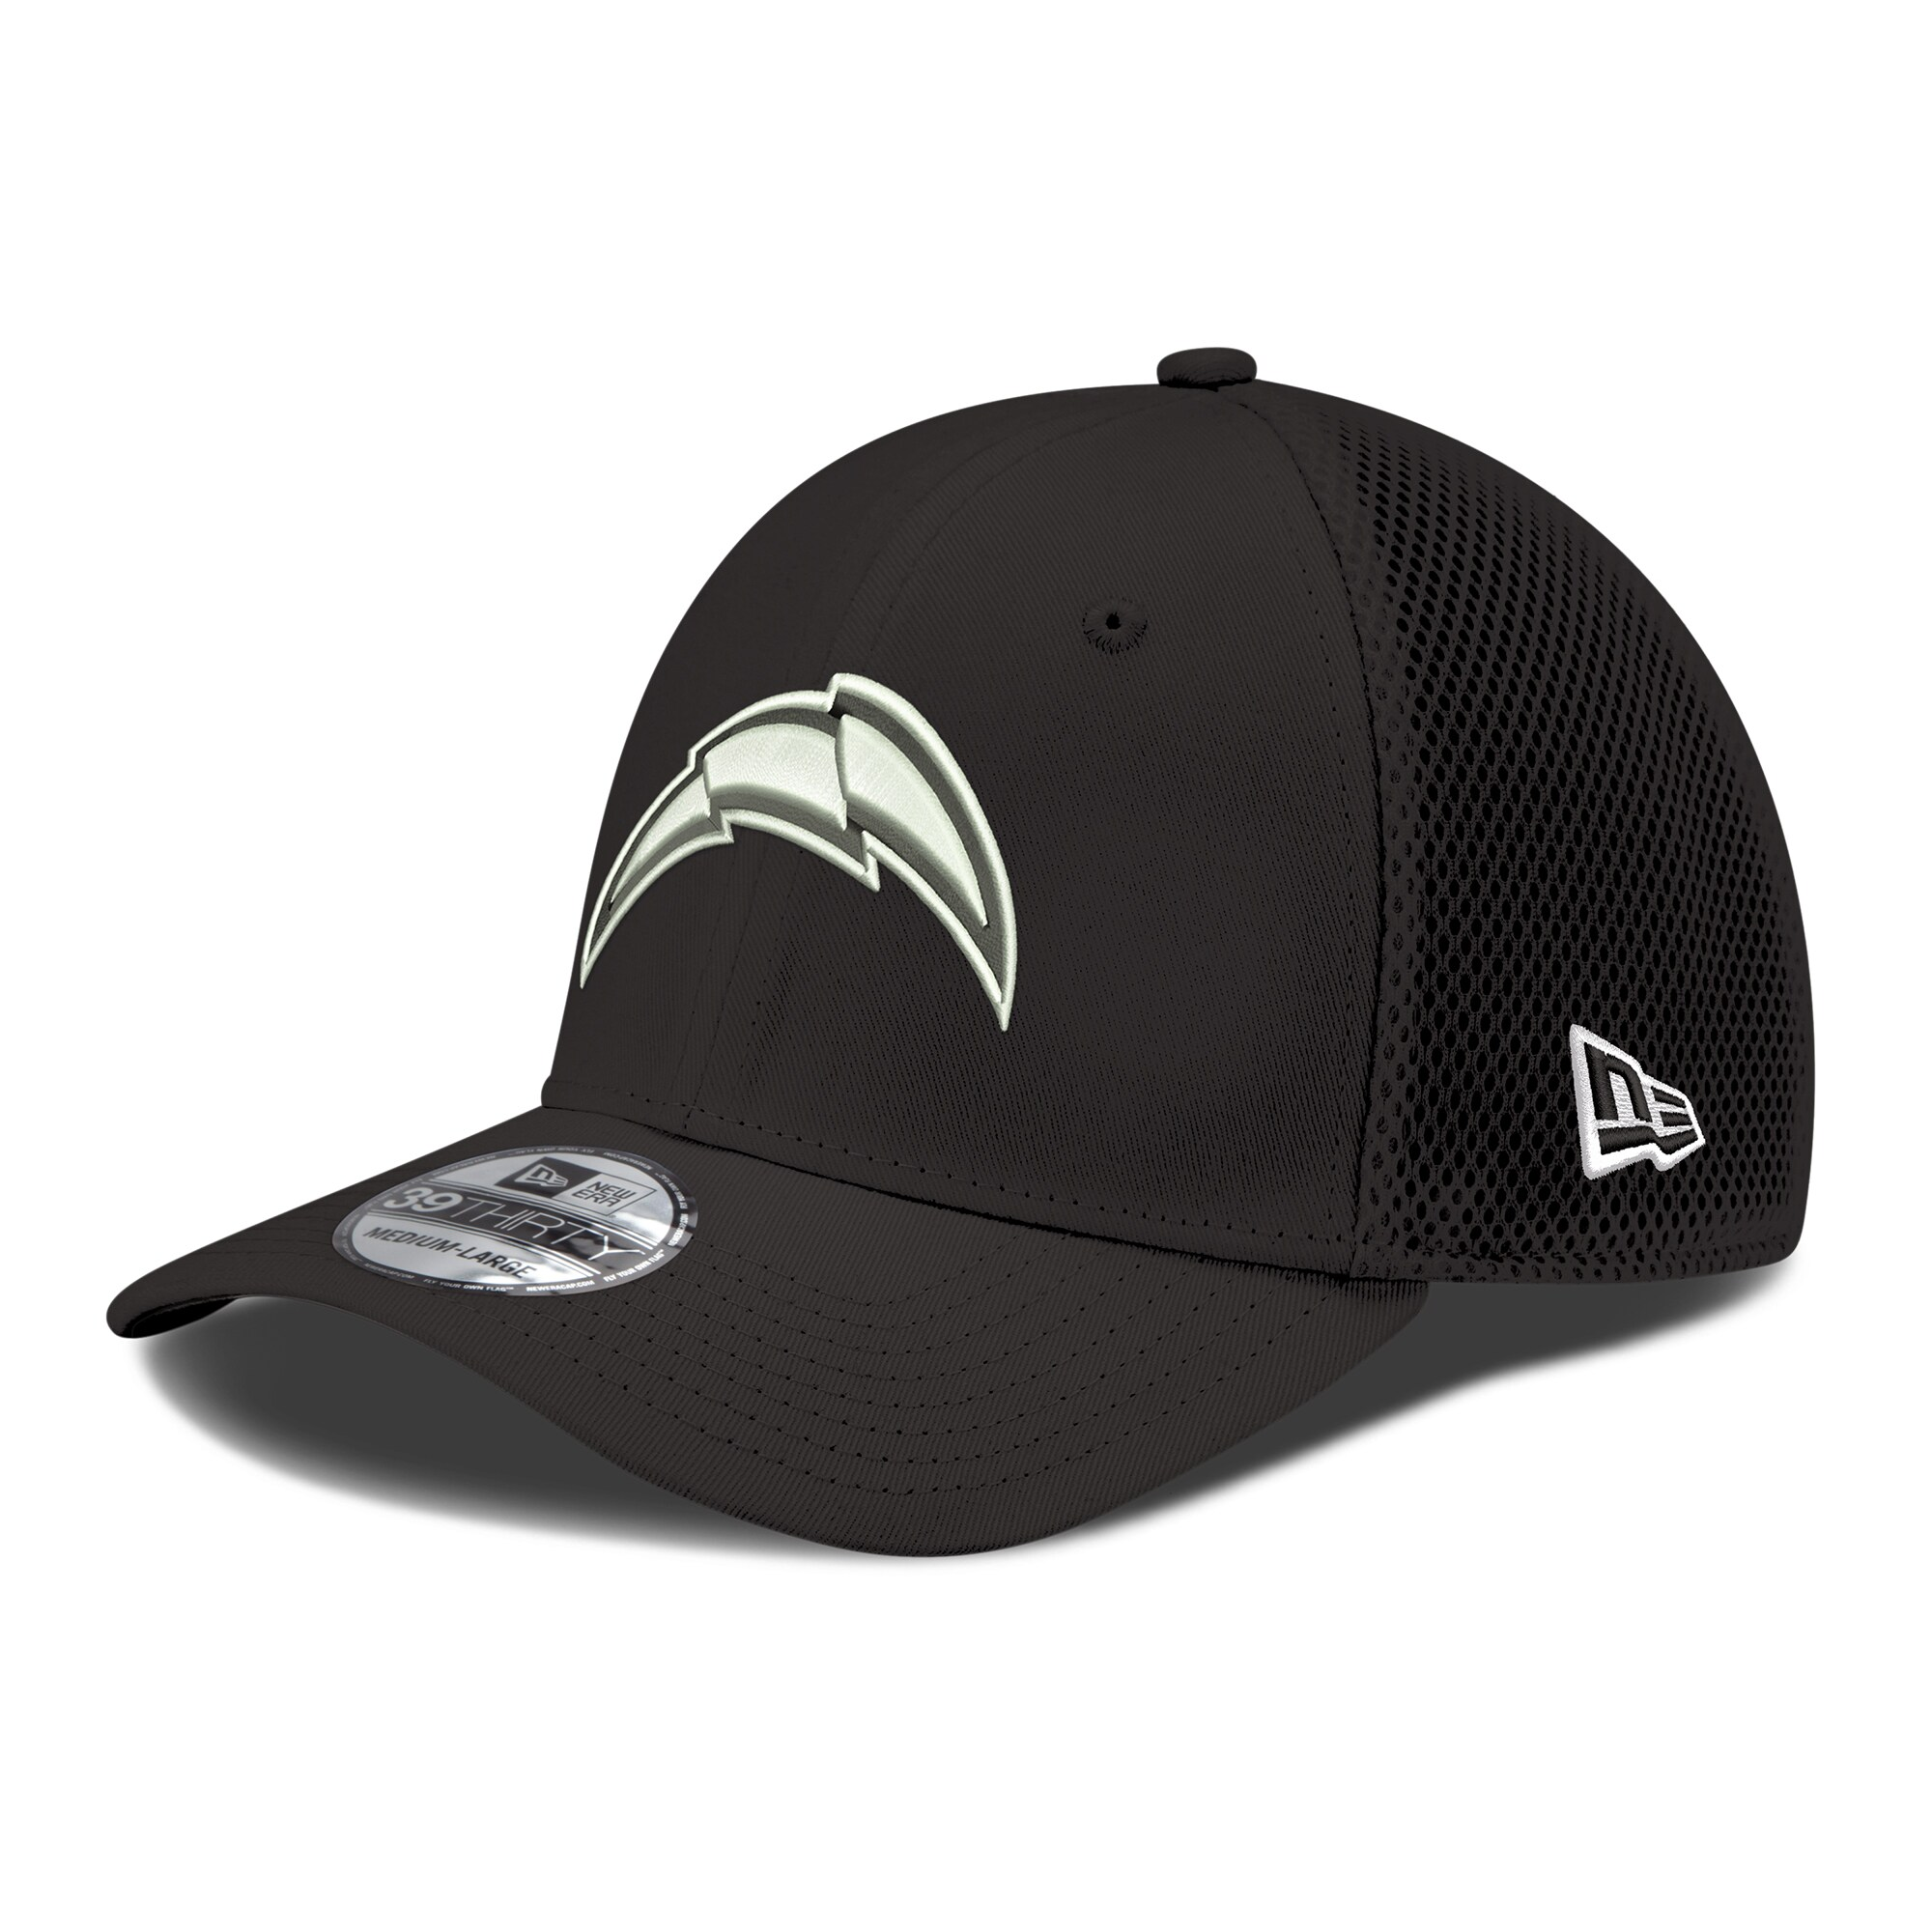 Los Angeles Chargers New Era Black & White Neo Team 39THIRTY Flex Hat - Black